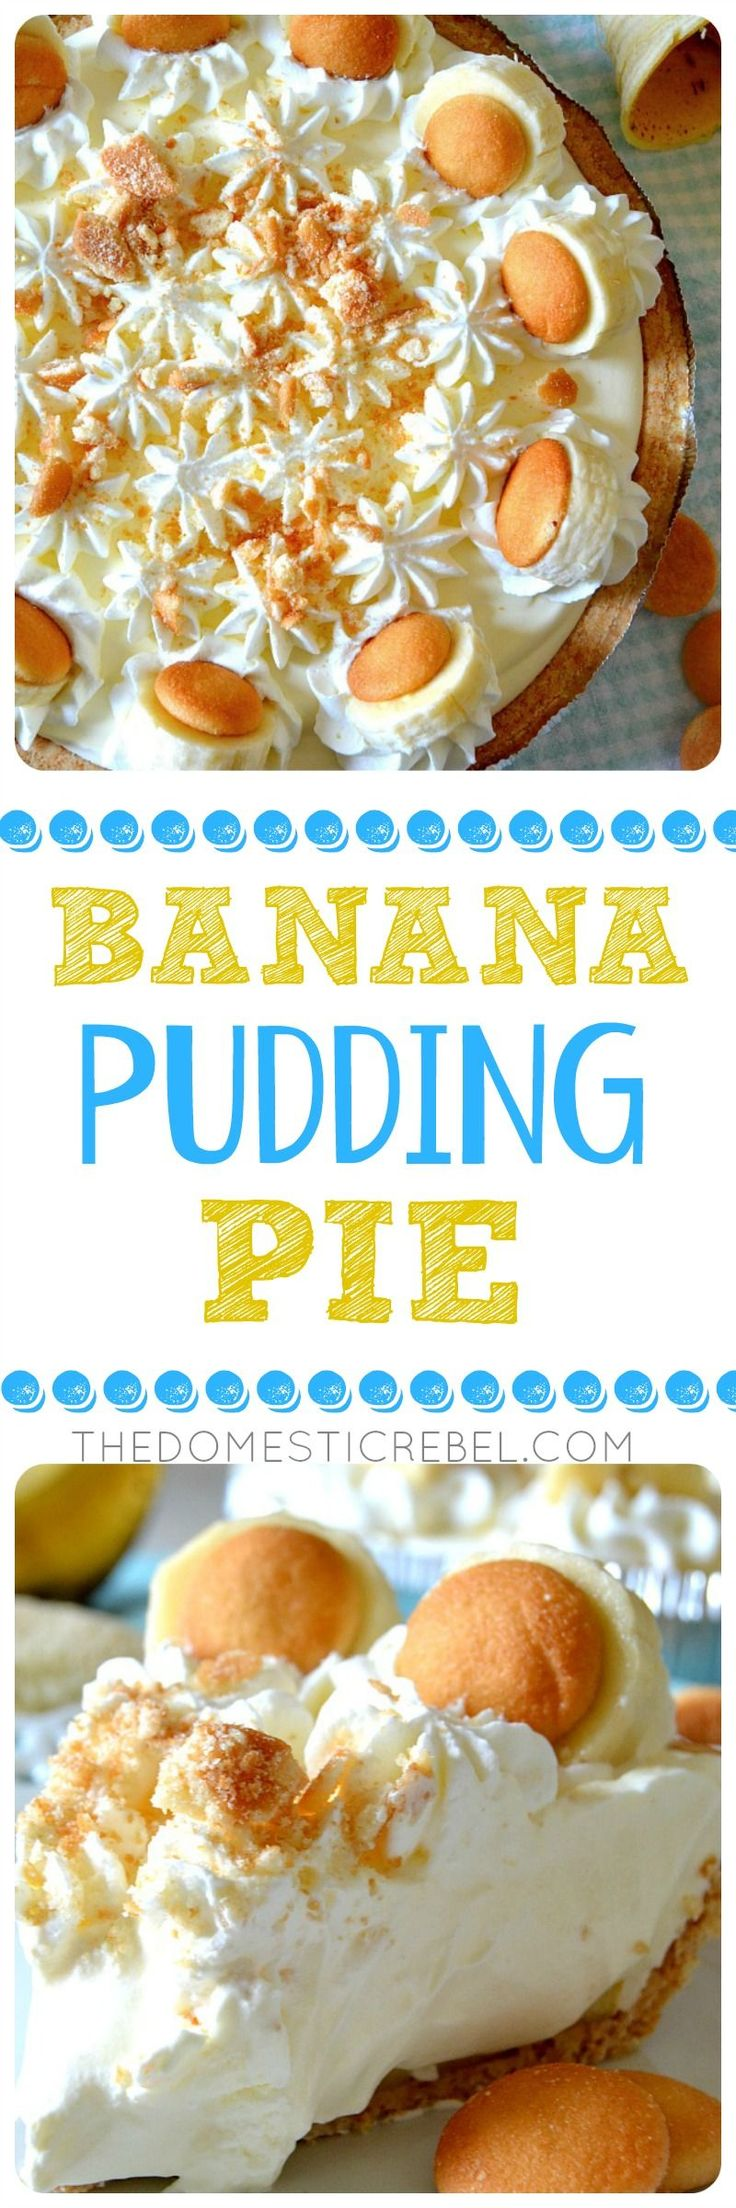 This is the BEST Banana Pudding Pie EVER! Promise :) Layers of sweet Nilla Wafers, fresh bananas, a creamy, smooth-as-silk banana pudding and homemade whipped cream come together in this easy, simple pie!